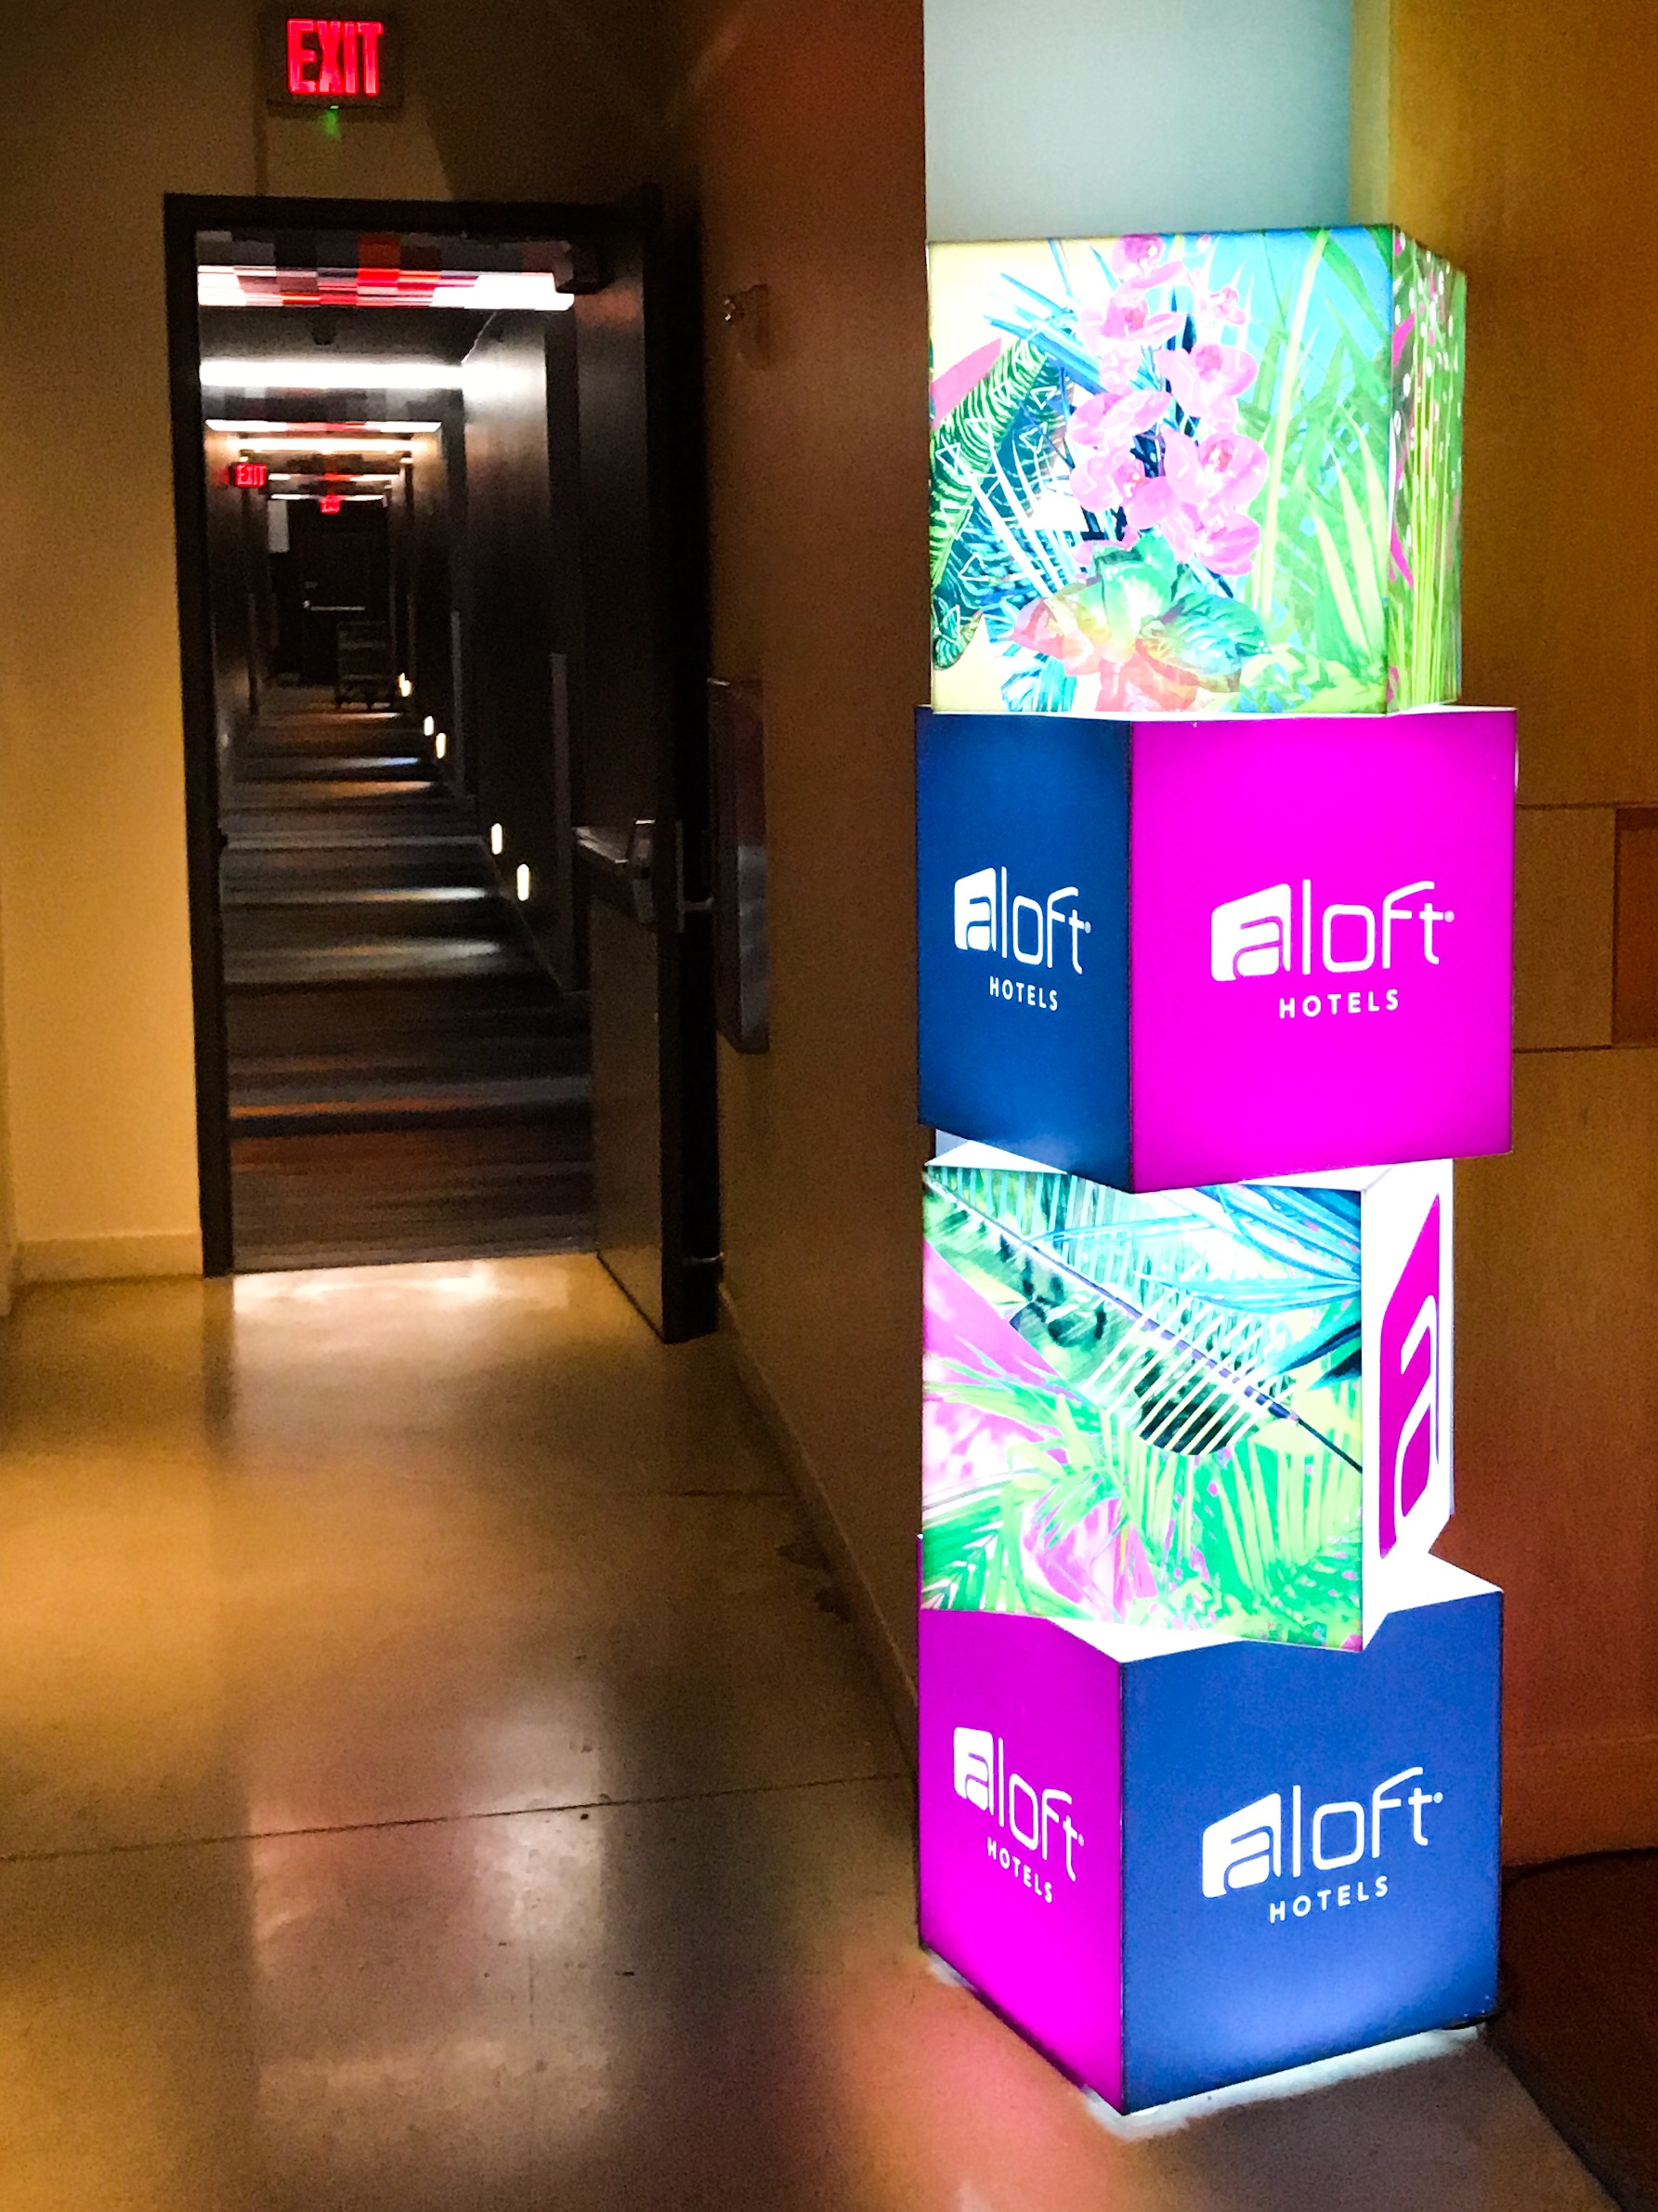 Aloft has a contemporary design style and branding, much like Moxy, another Marriott brand.